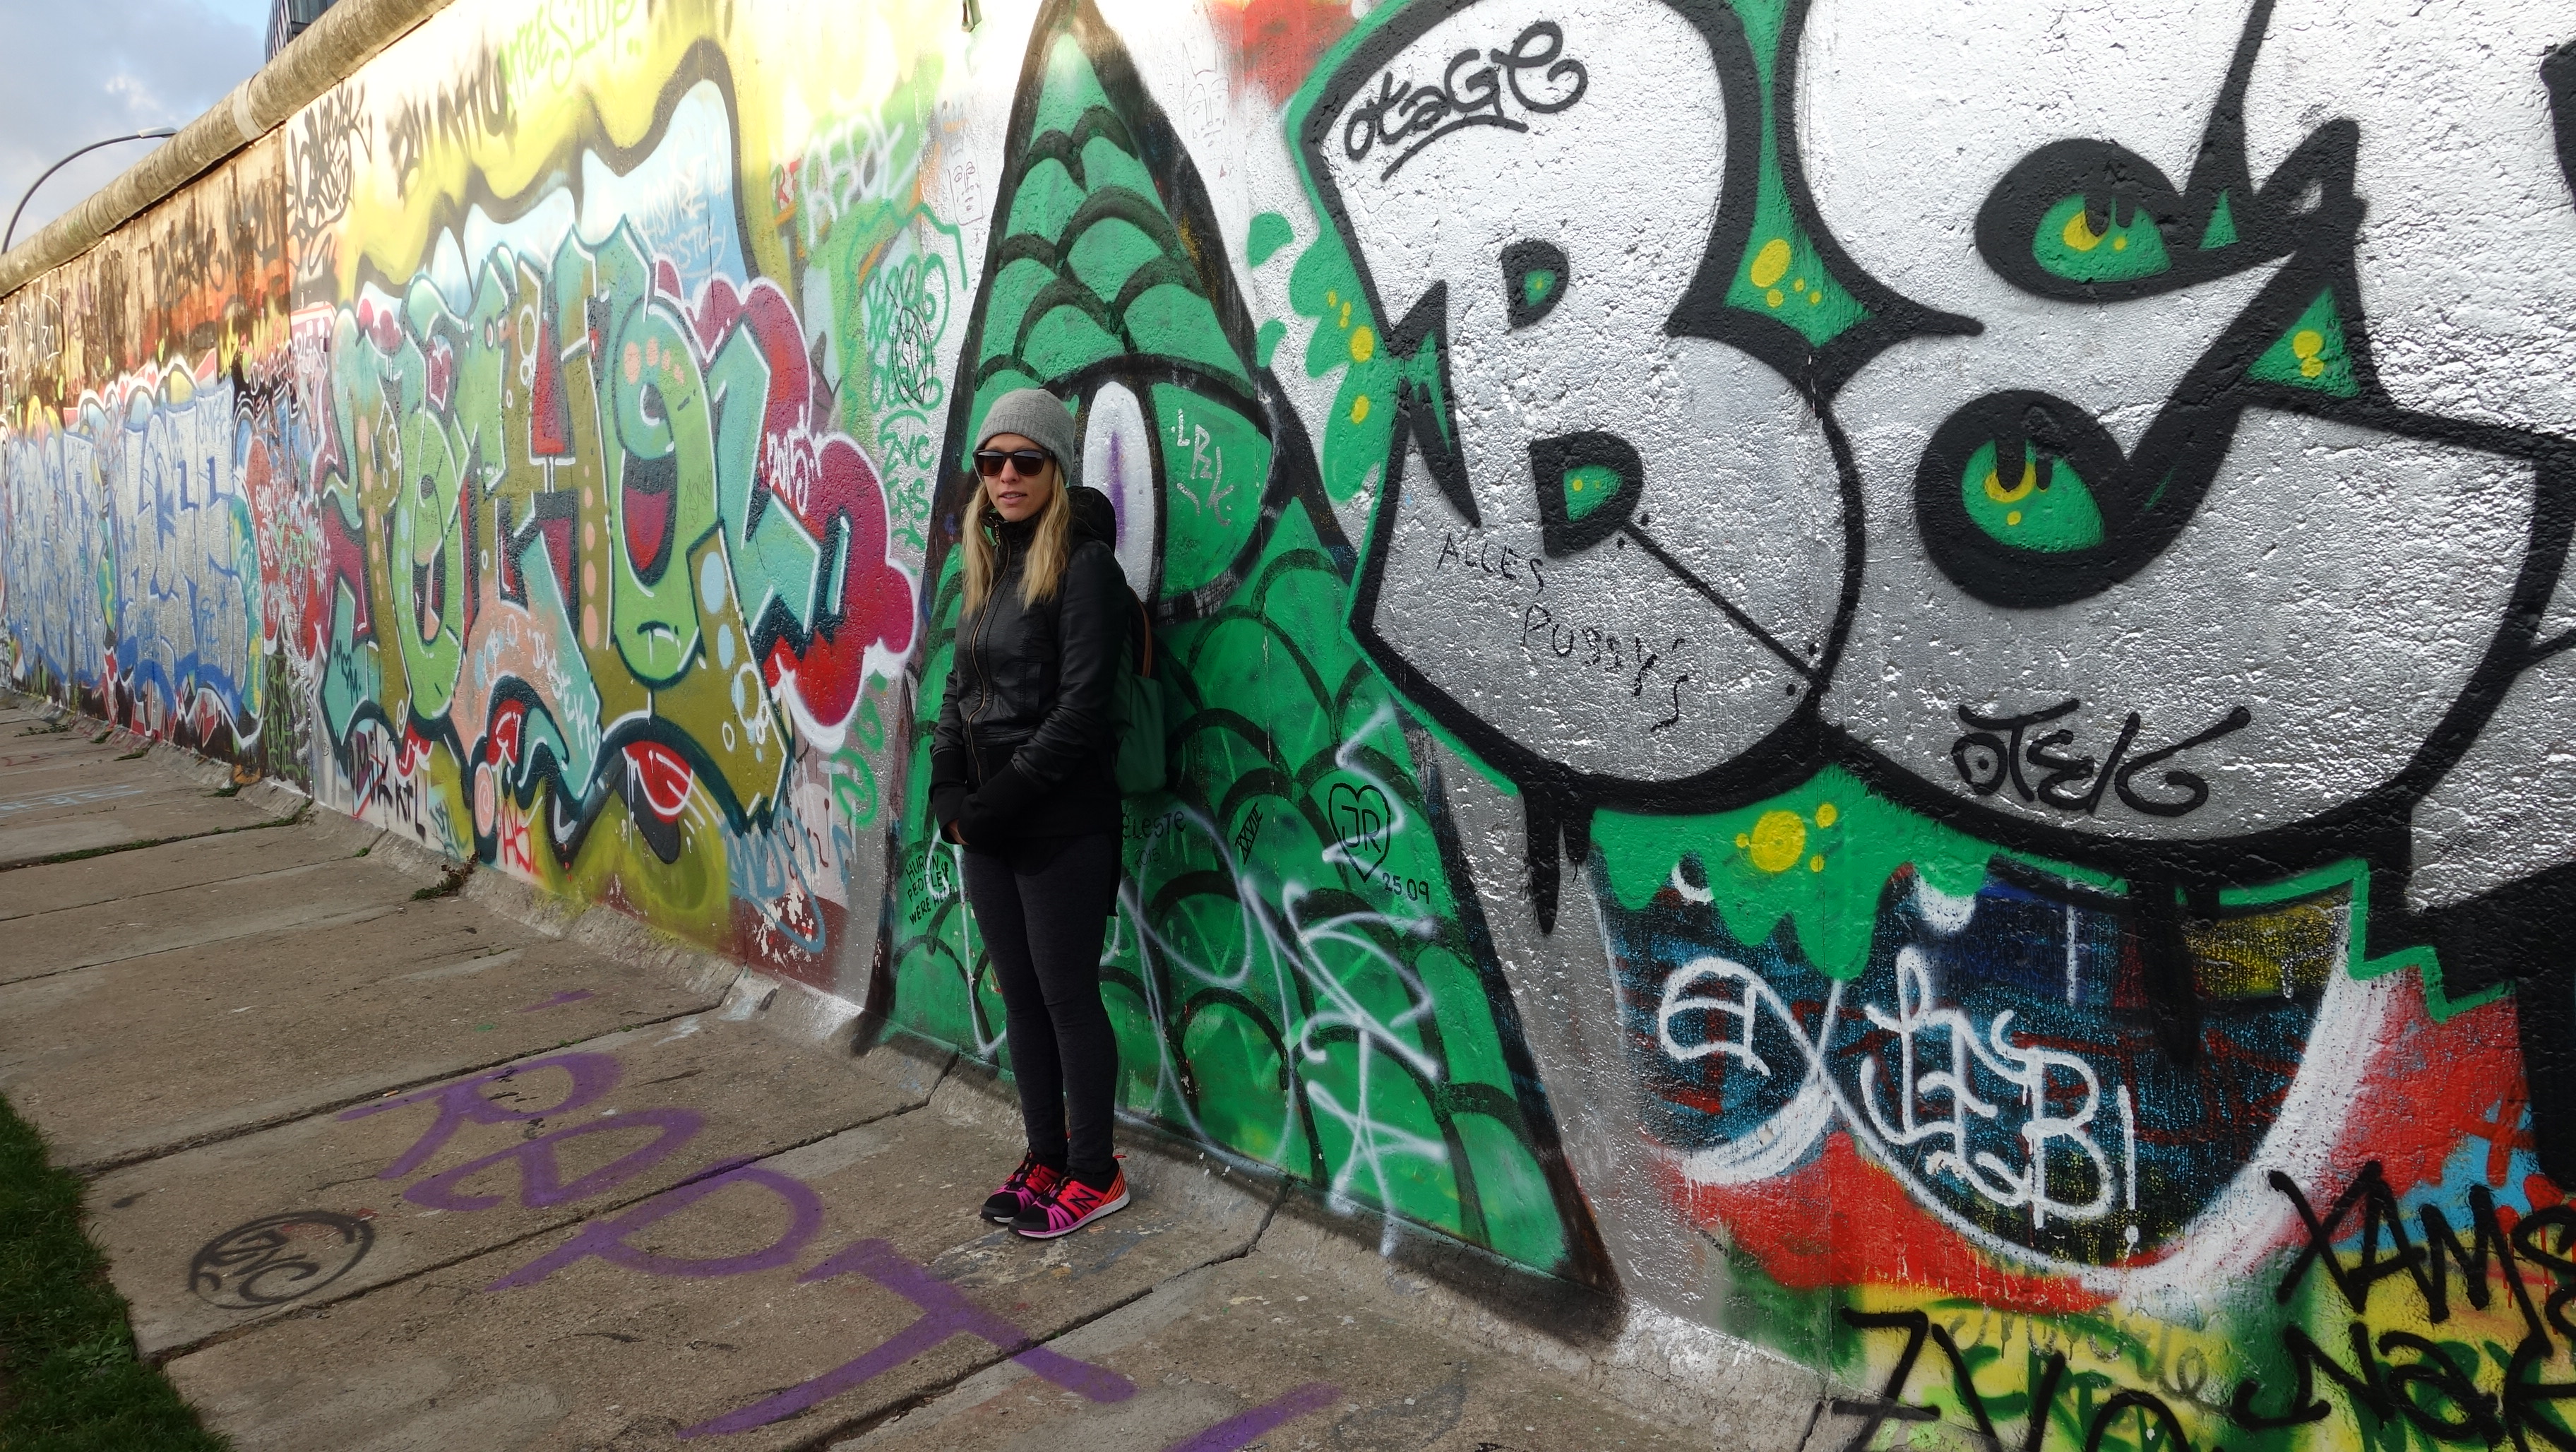 Posing at the Berlin Wall